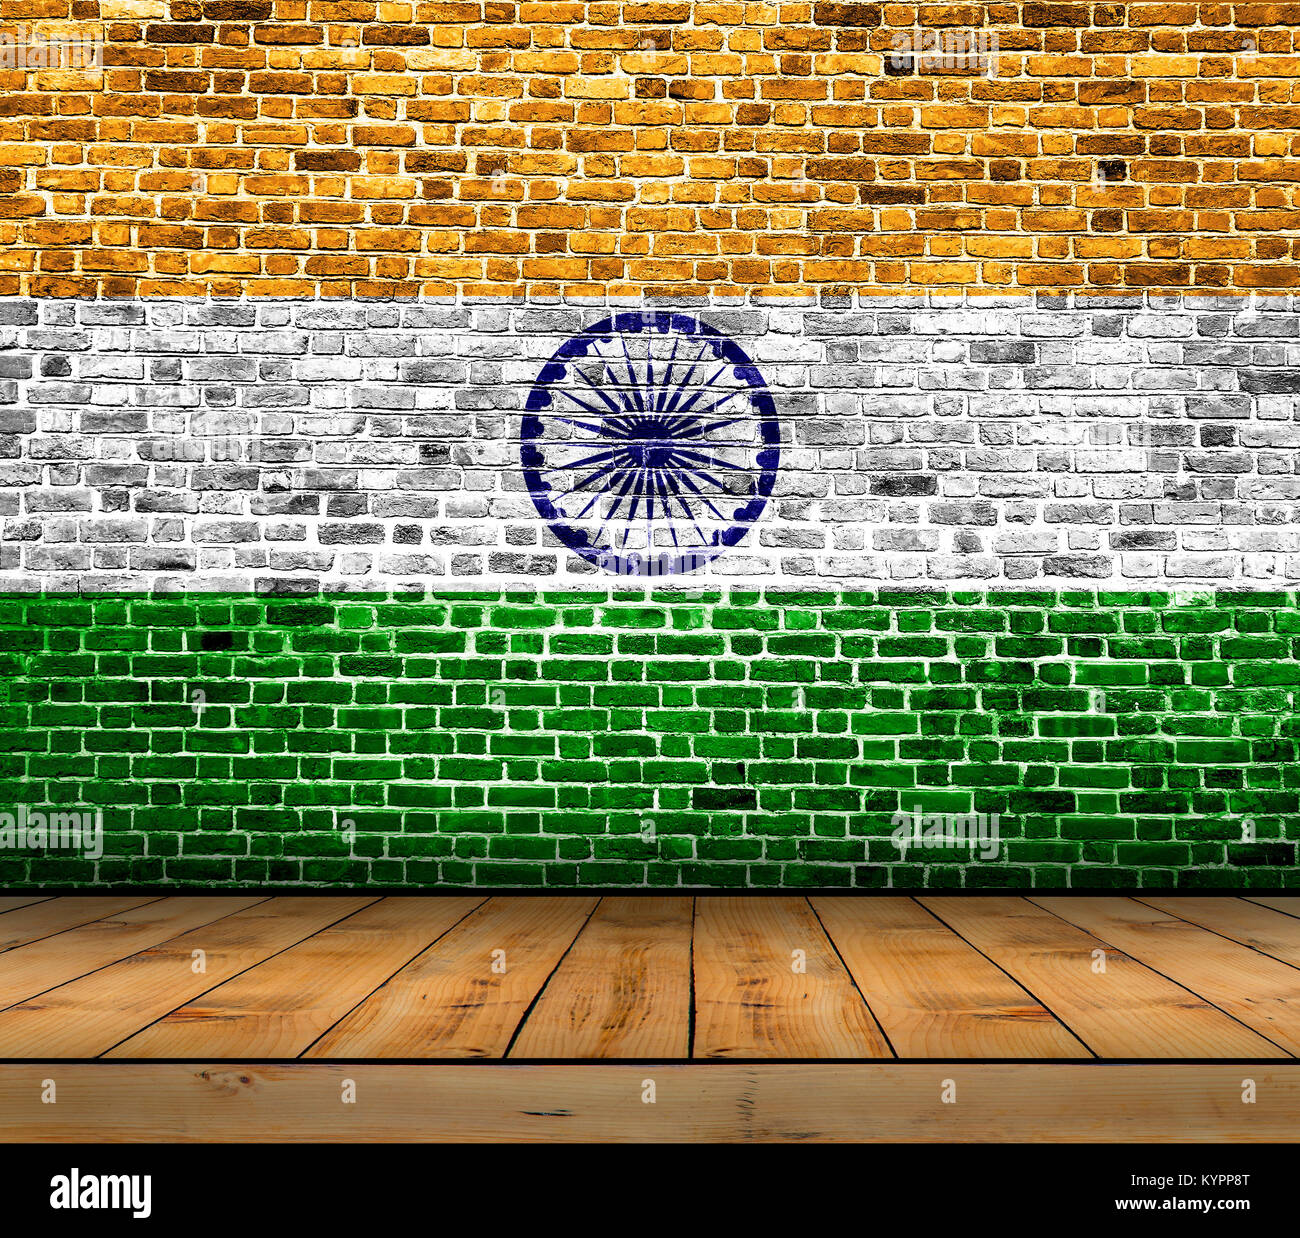 Brick Flooring India: India Flag Painted On Brick Wall With Wooden Floor Stock